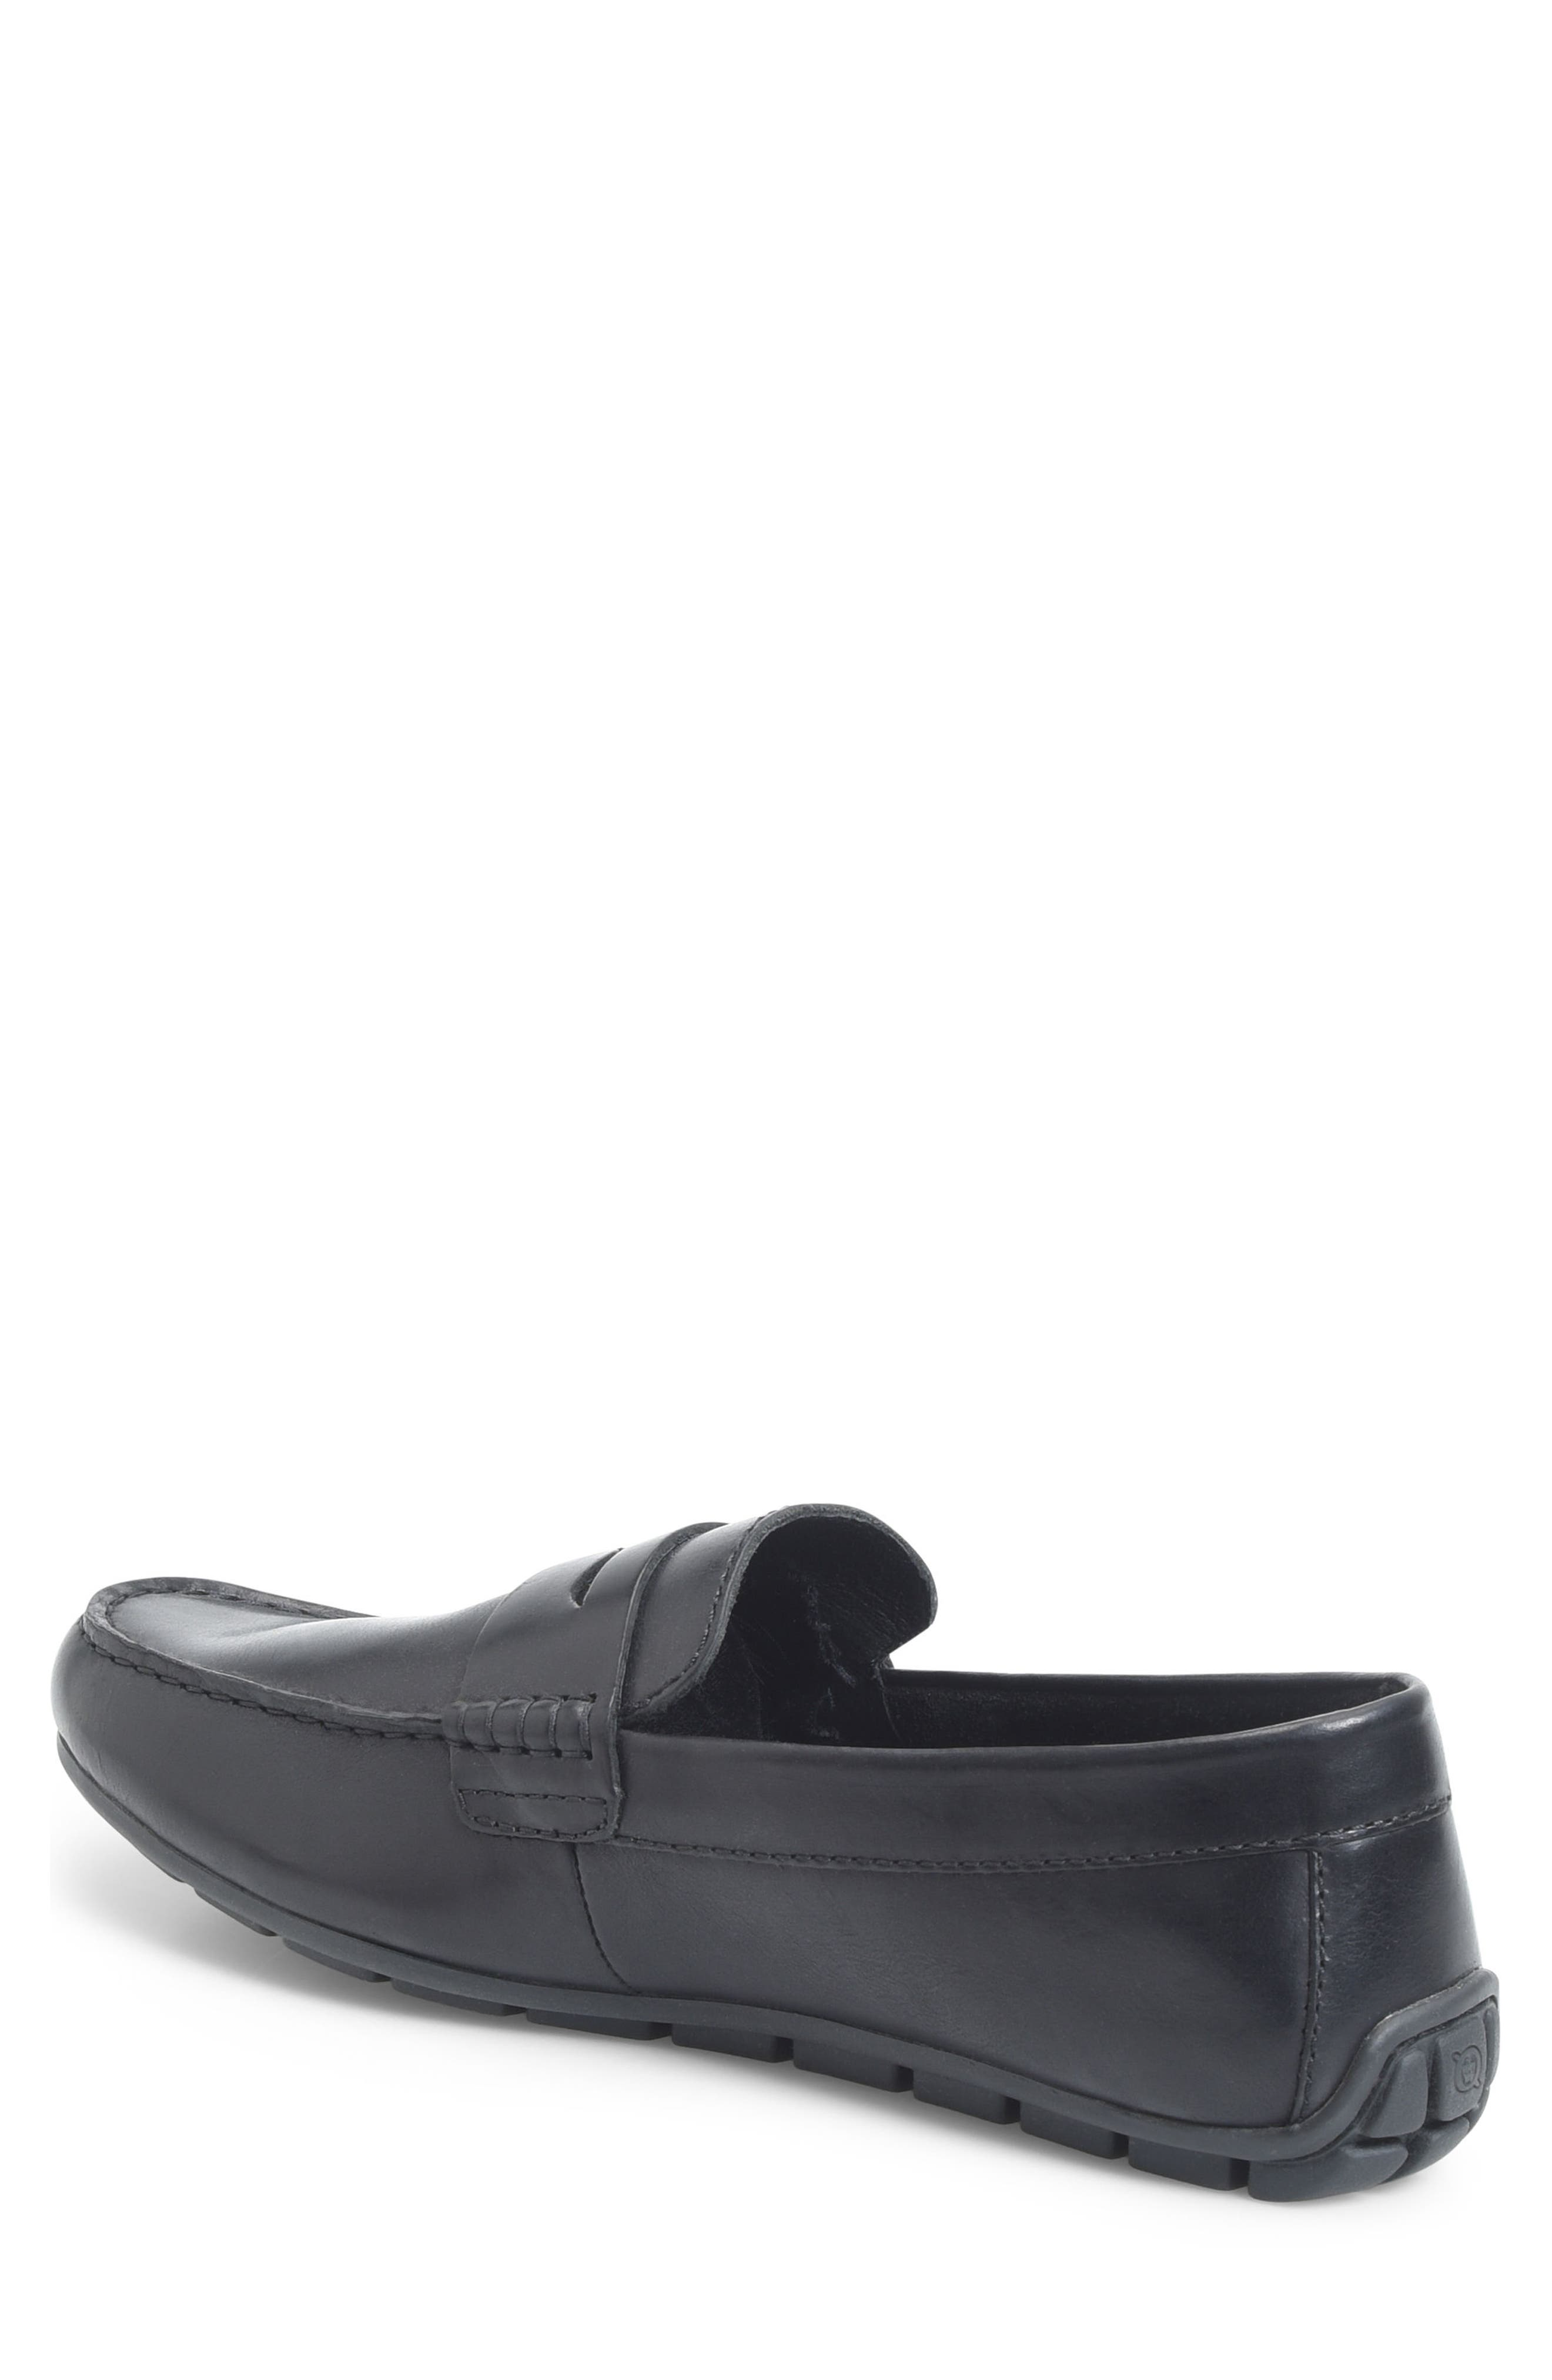 Andes Driving Shoe,                             Alternate thumbnail 2, color,                             BLACK